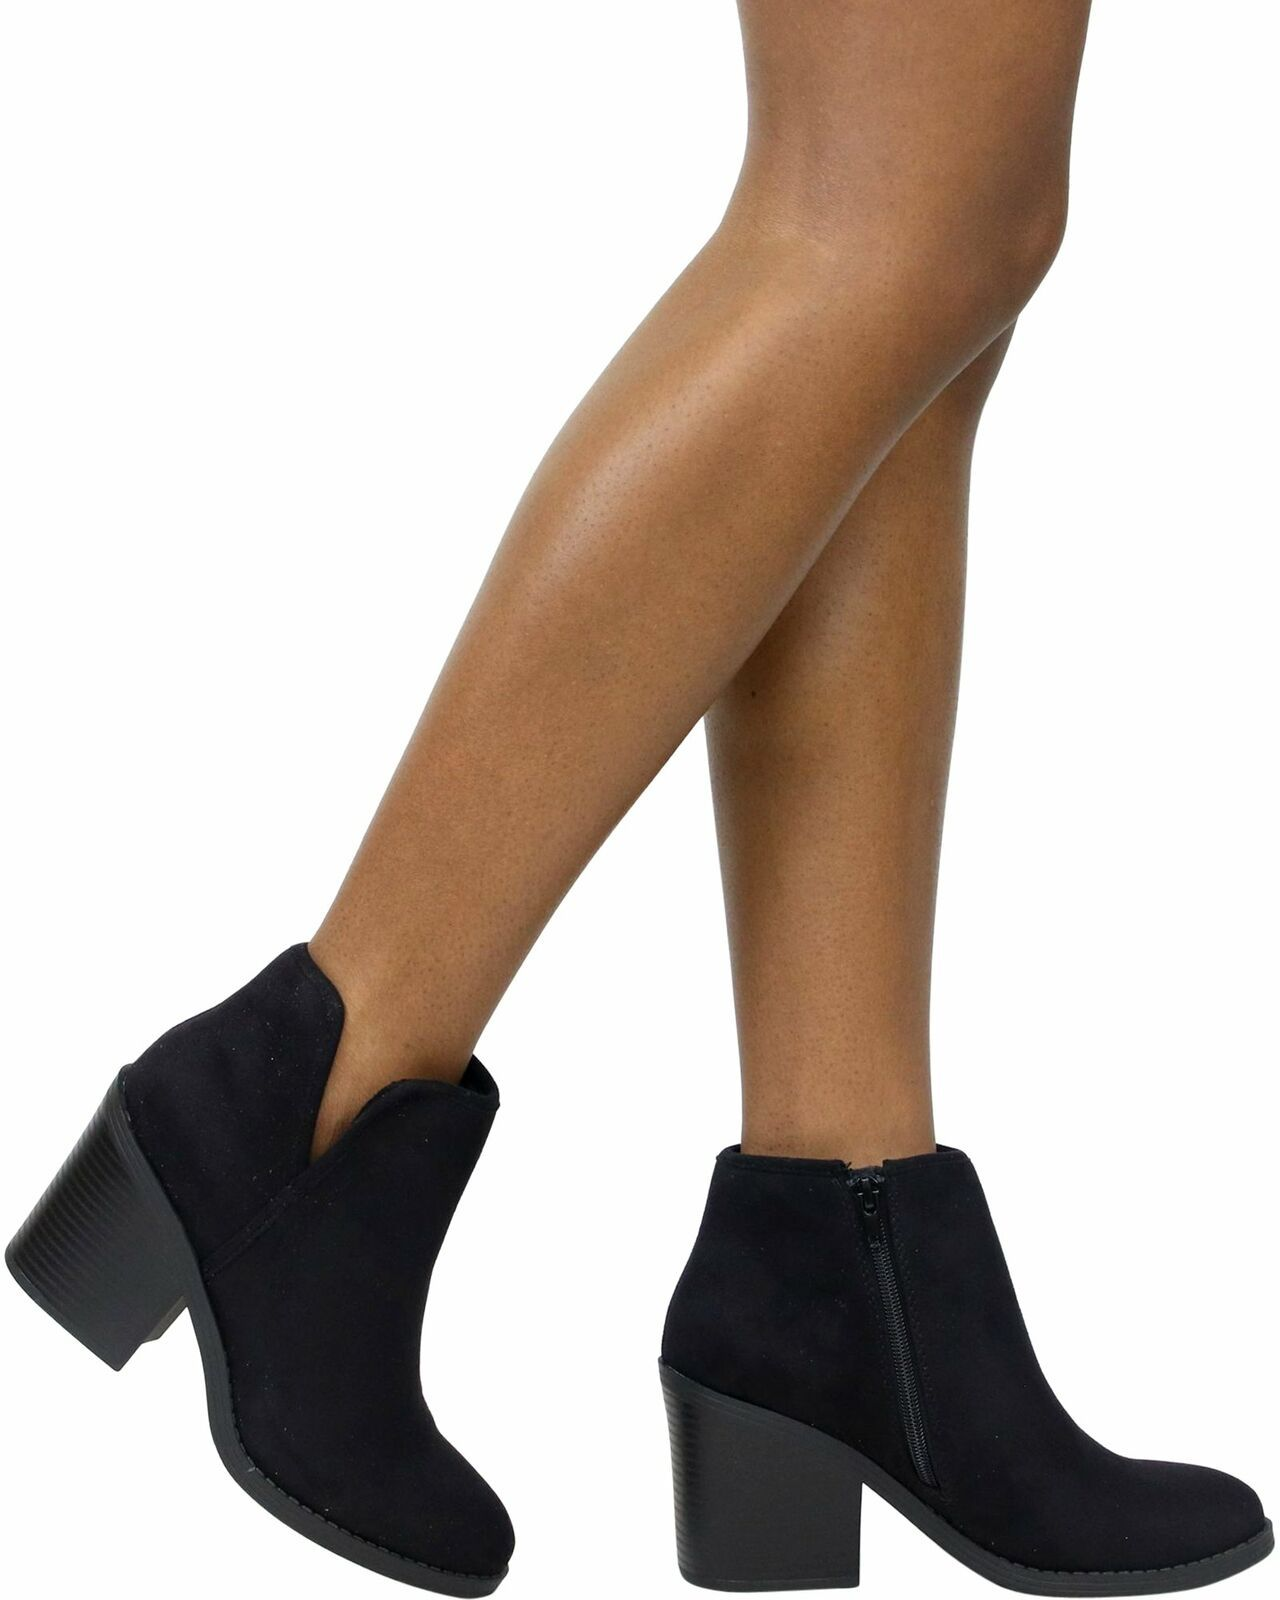 Soda Target Ankle Boot Black Suede Bootie size 10 Black  - $40.10